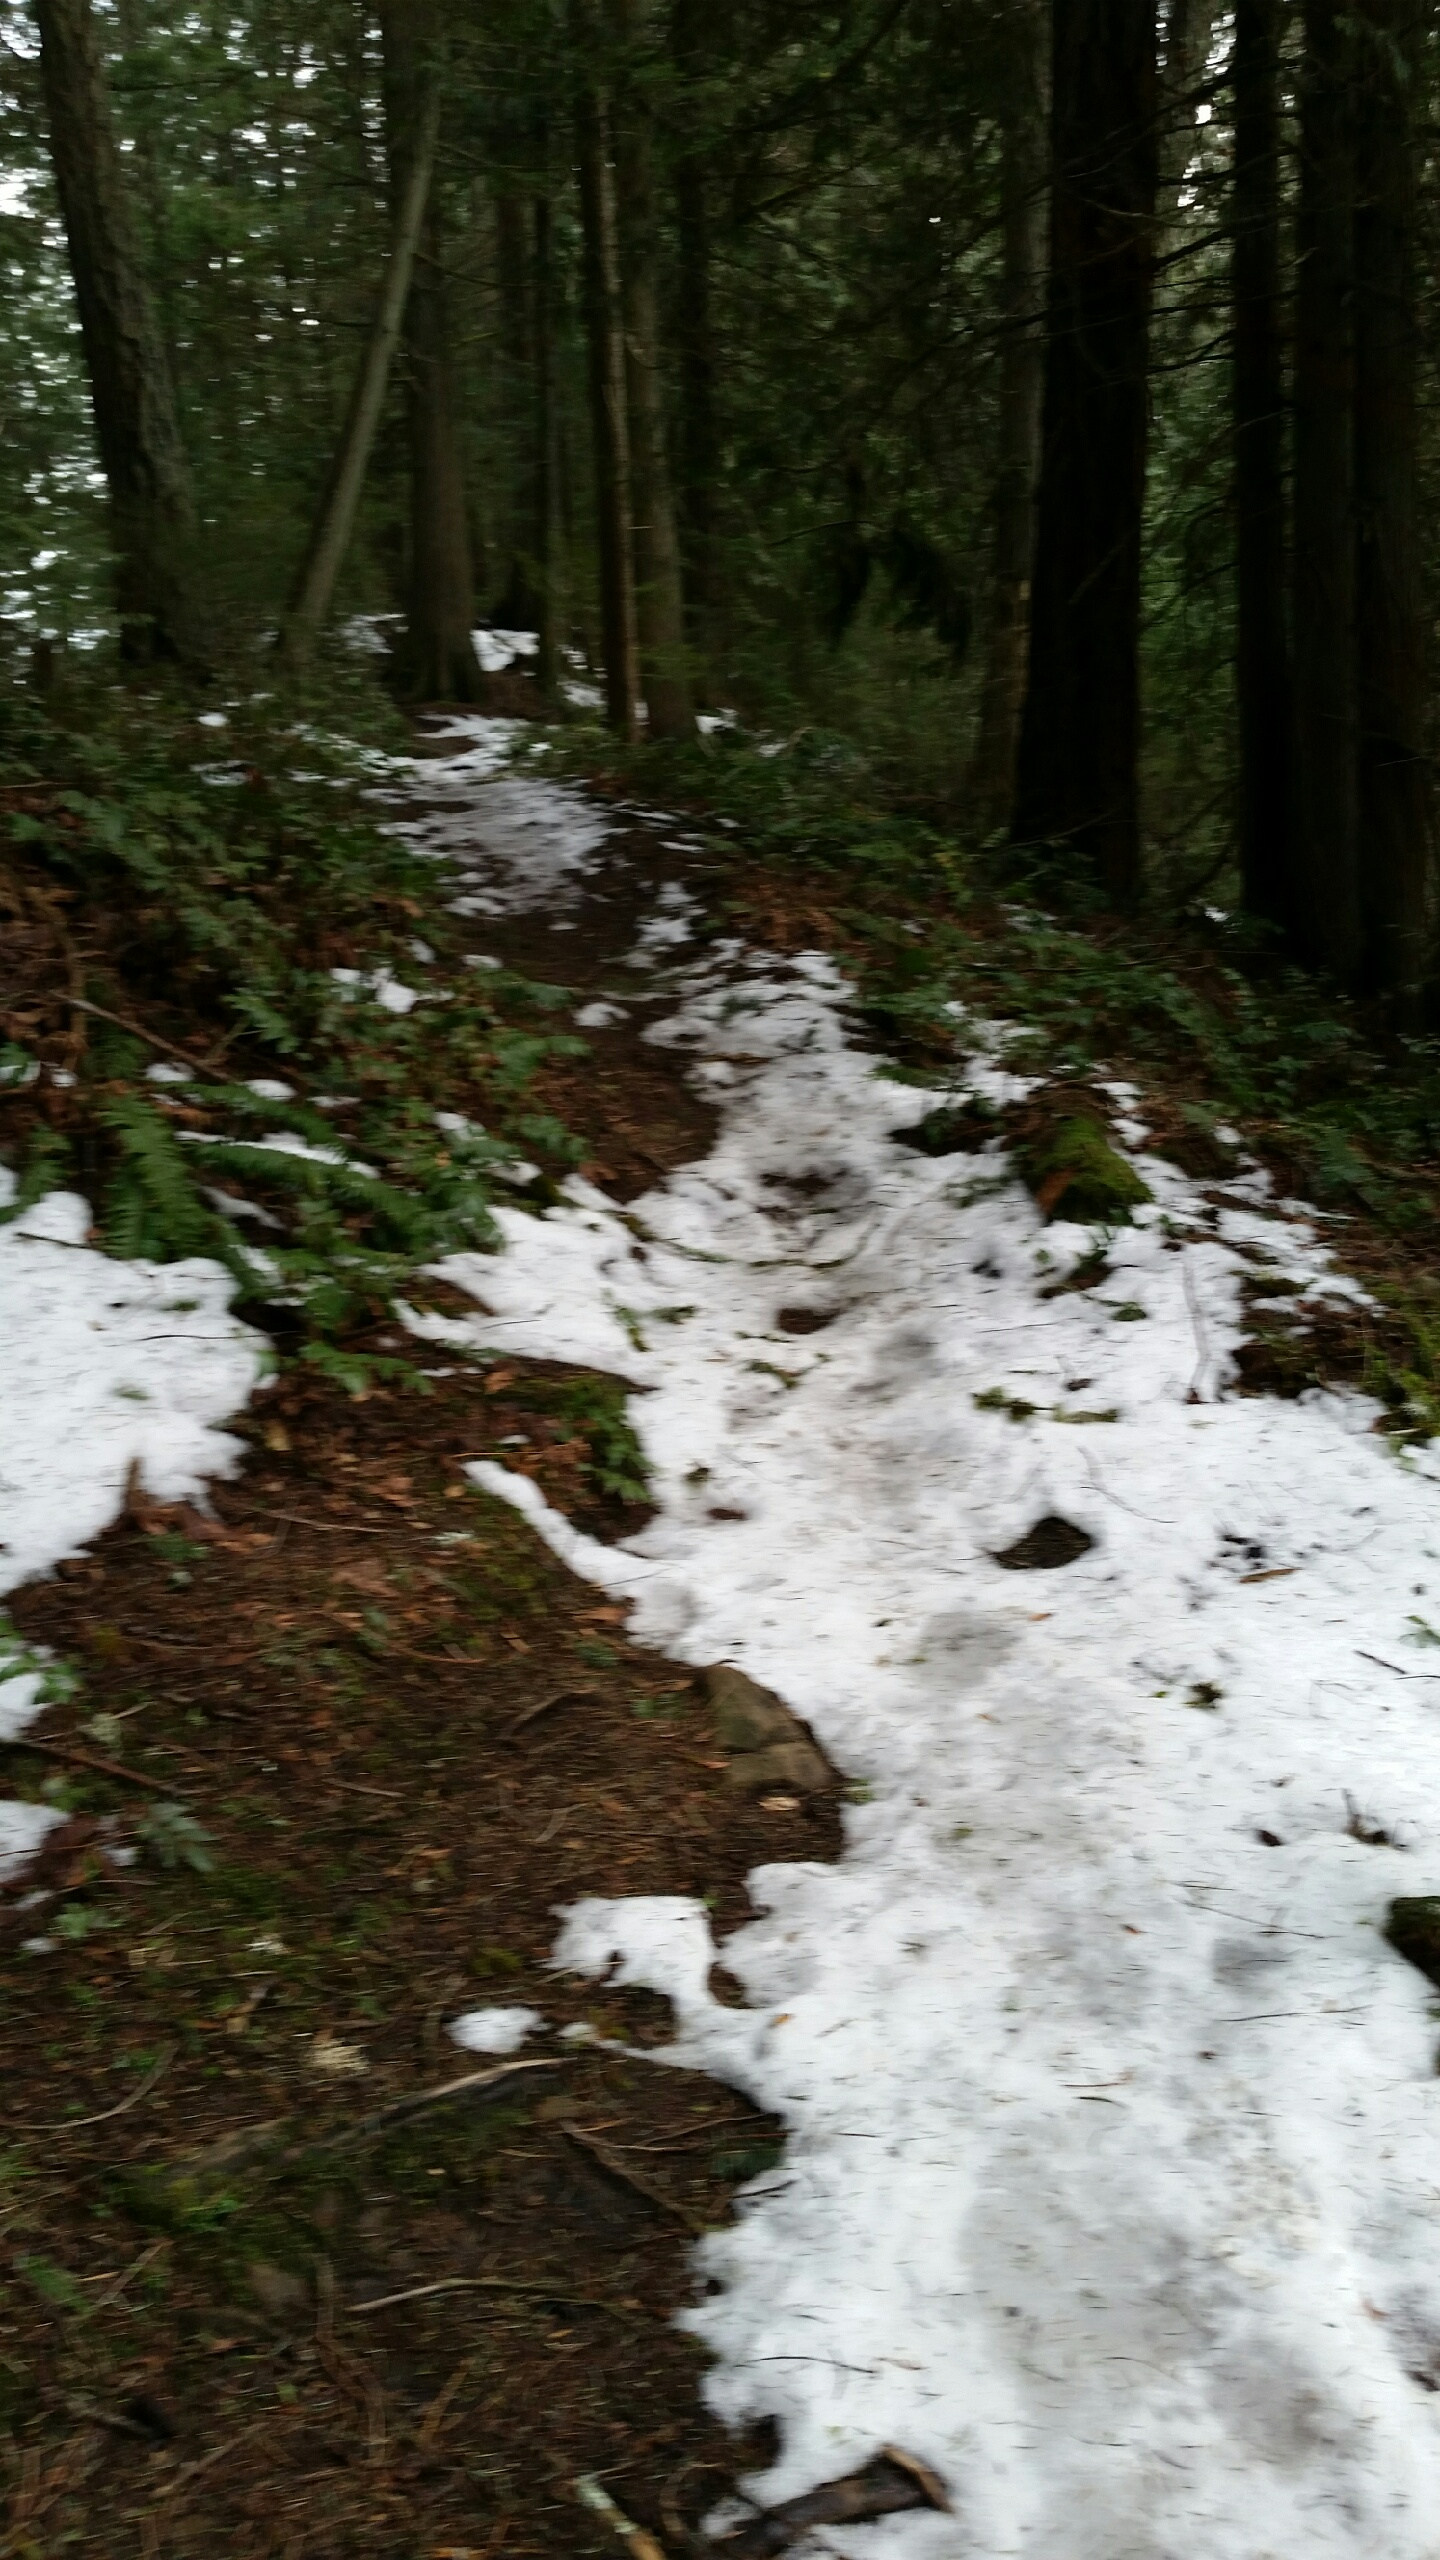 The Ridge Trail is snowy & icy in patches, especially the first mile.